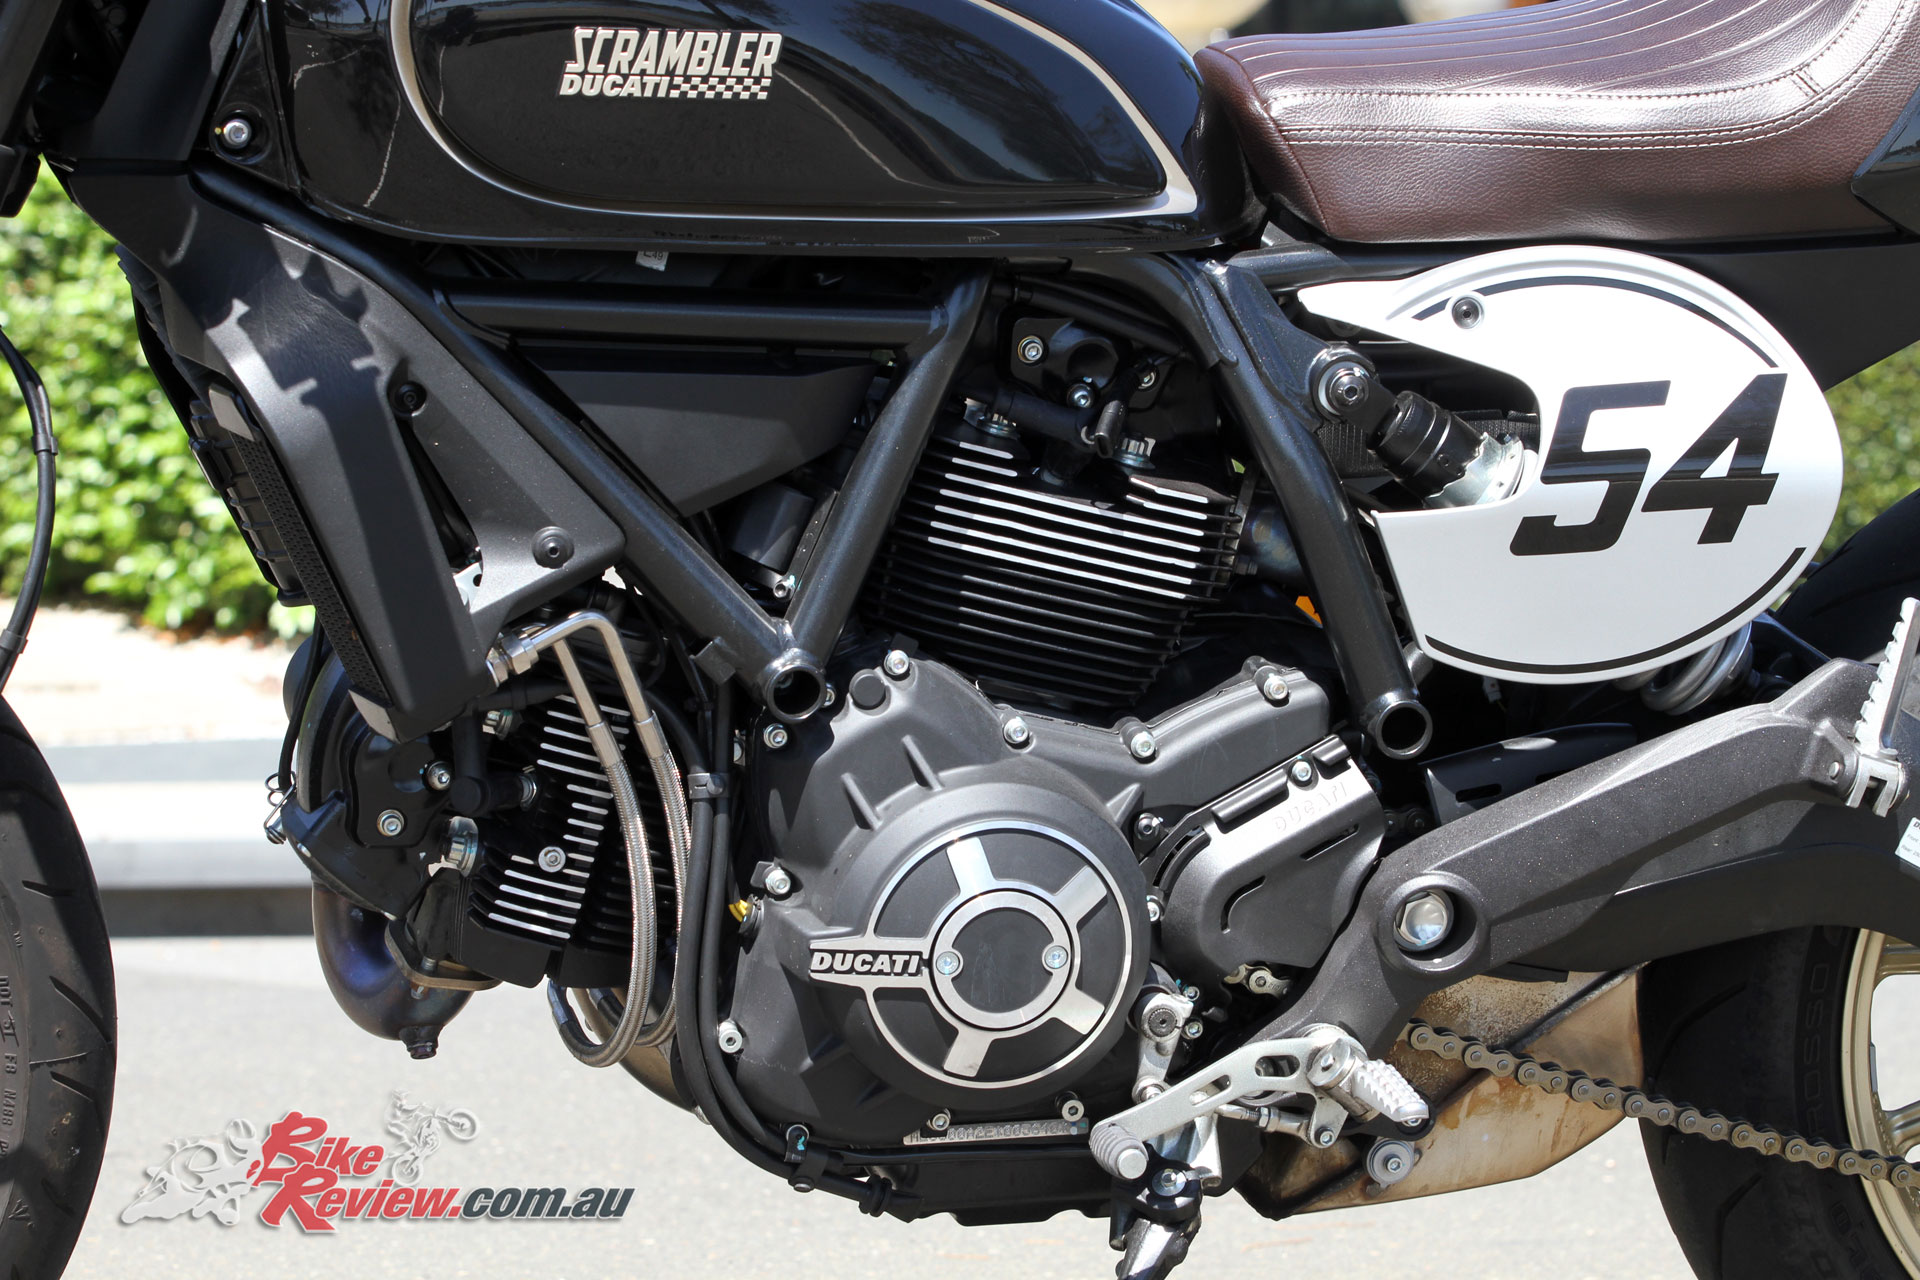 The 803cc powerplant is torquey, fun and offers more than enough ooomph for almost all road duties